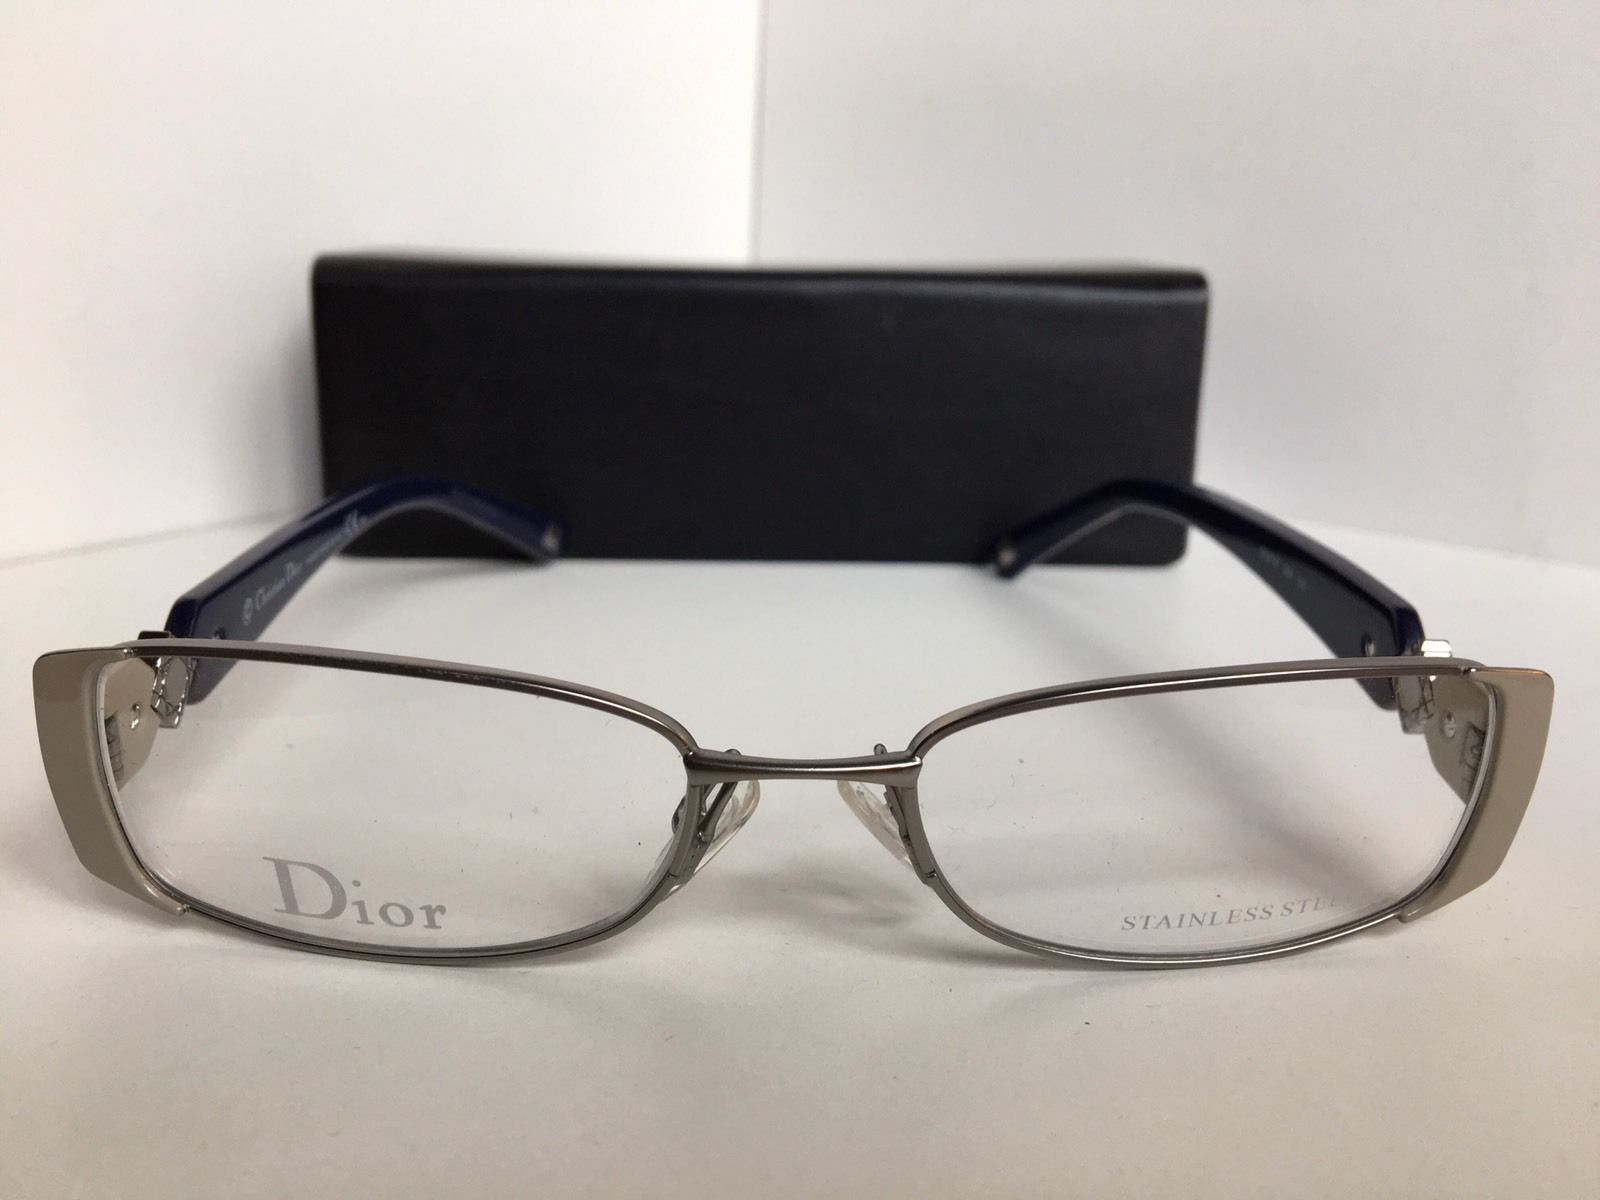 01ccab94ecd S l1600. S l1600. New Christian Dior CD 3747 CD3747 Q97 Women s Eyeglasses  Optical Frame · New Christian Dior ...